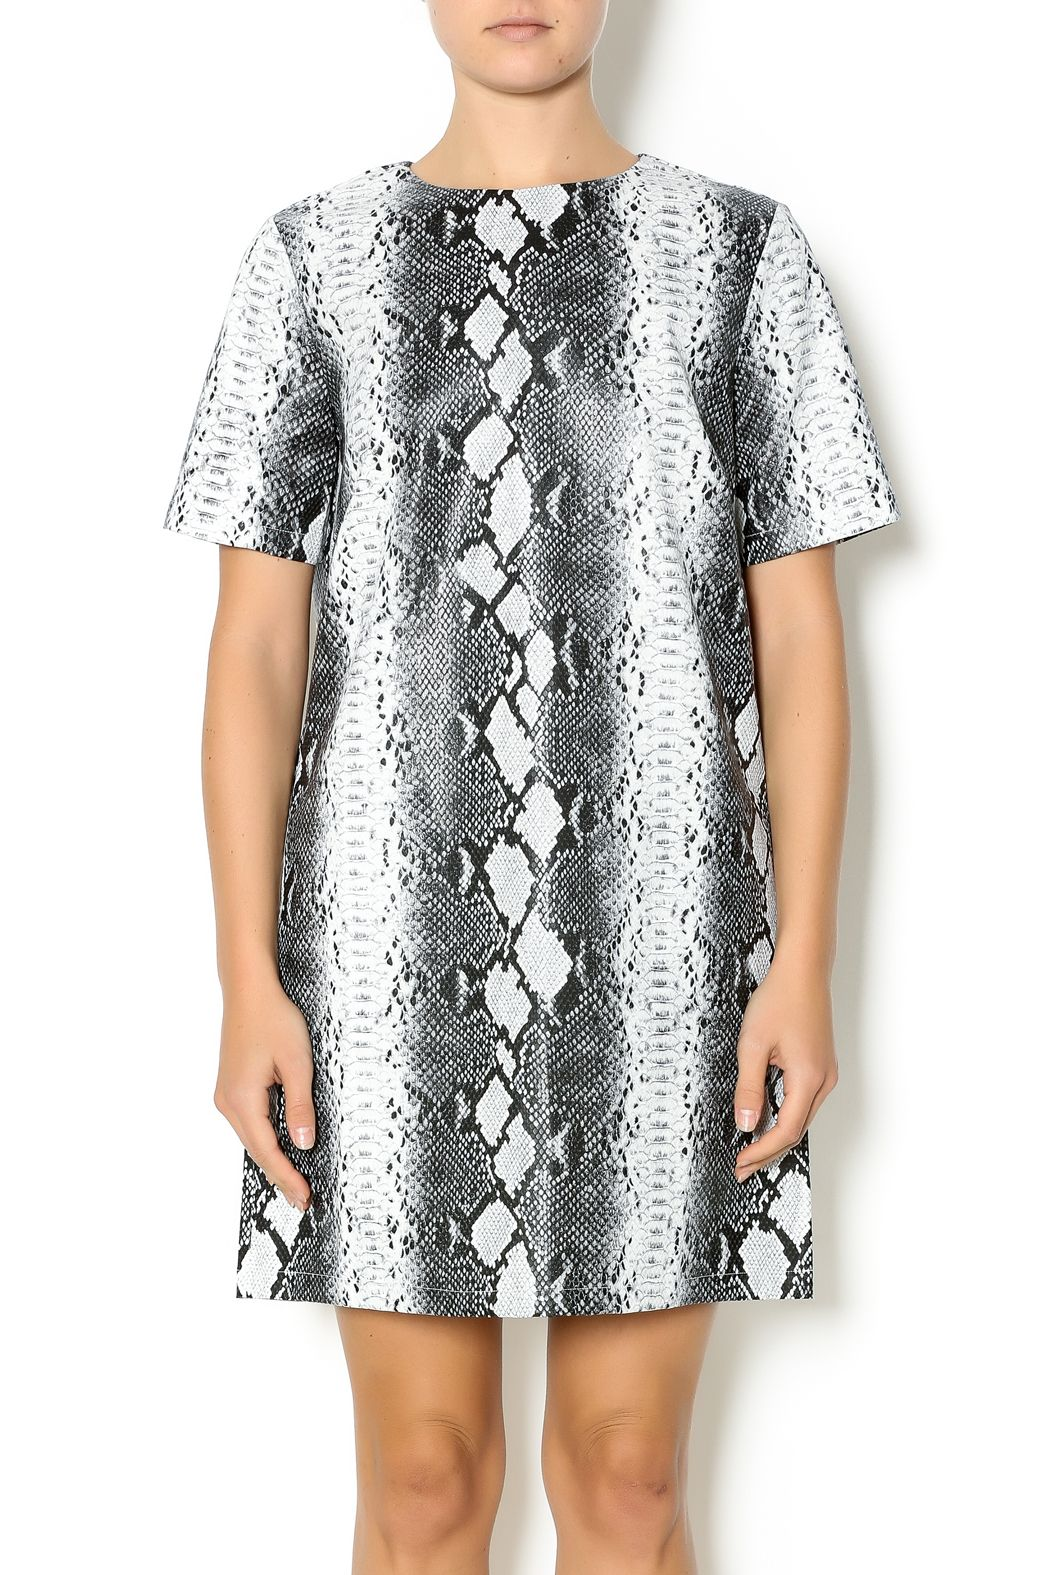 08a26c4c9d1f Black and white striking snake skin printed dress with short sleeve, boxy  cut and an exposed silver zipper. Snake Print Dress by HYPR.